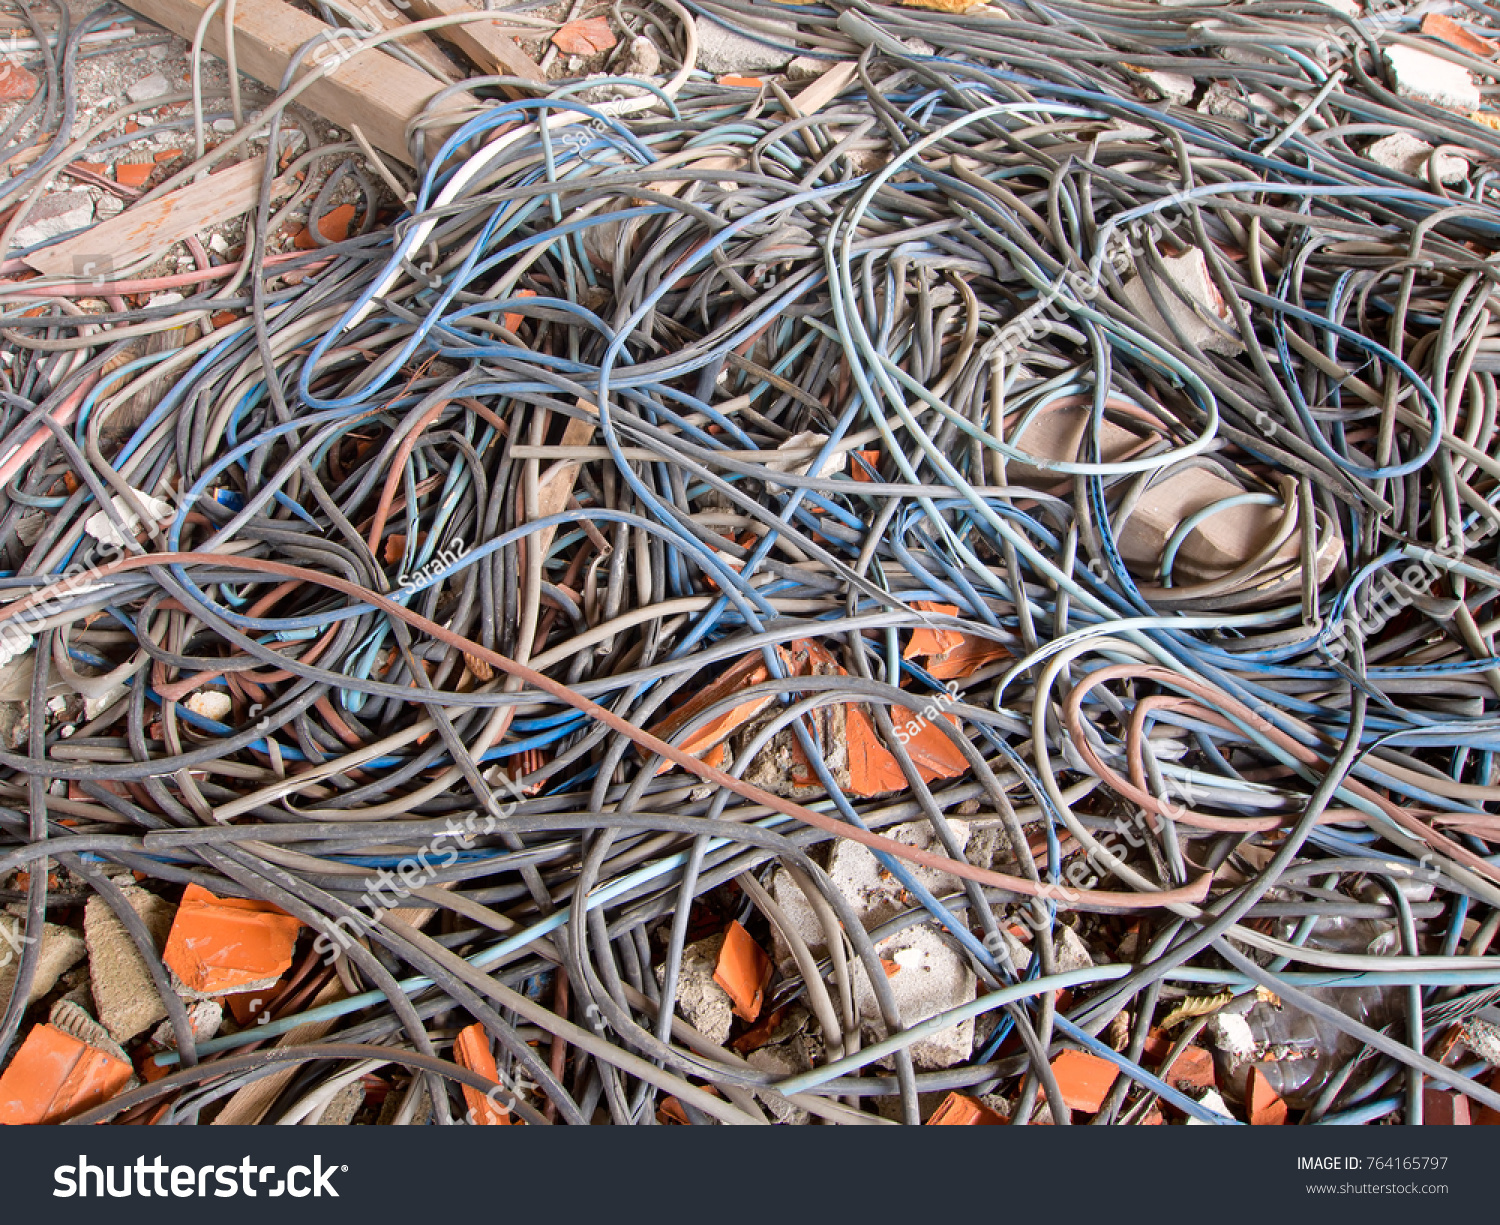 Old Electrical Cables During Demolition Tangled Stock Photo (Royalty ...